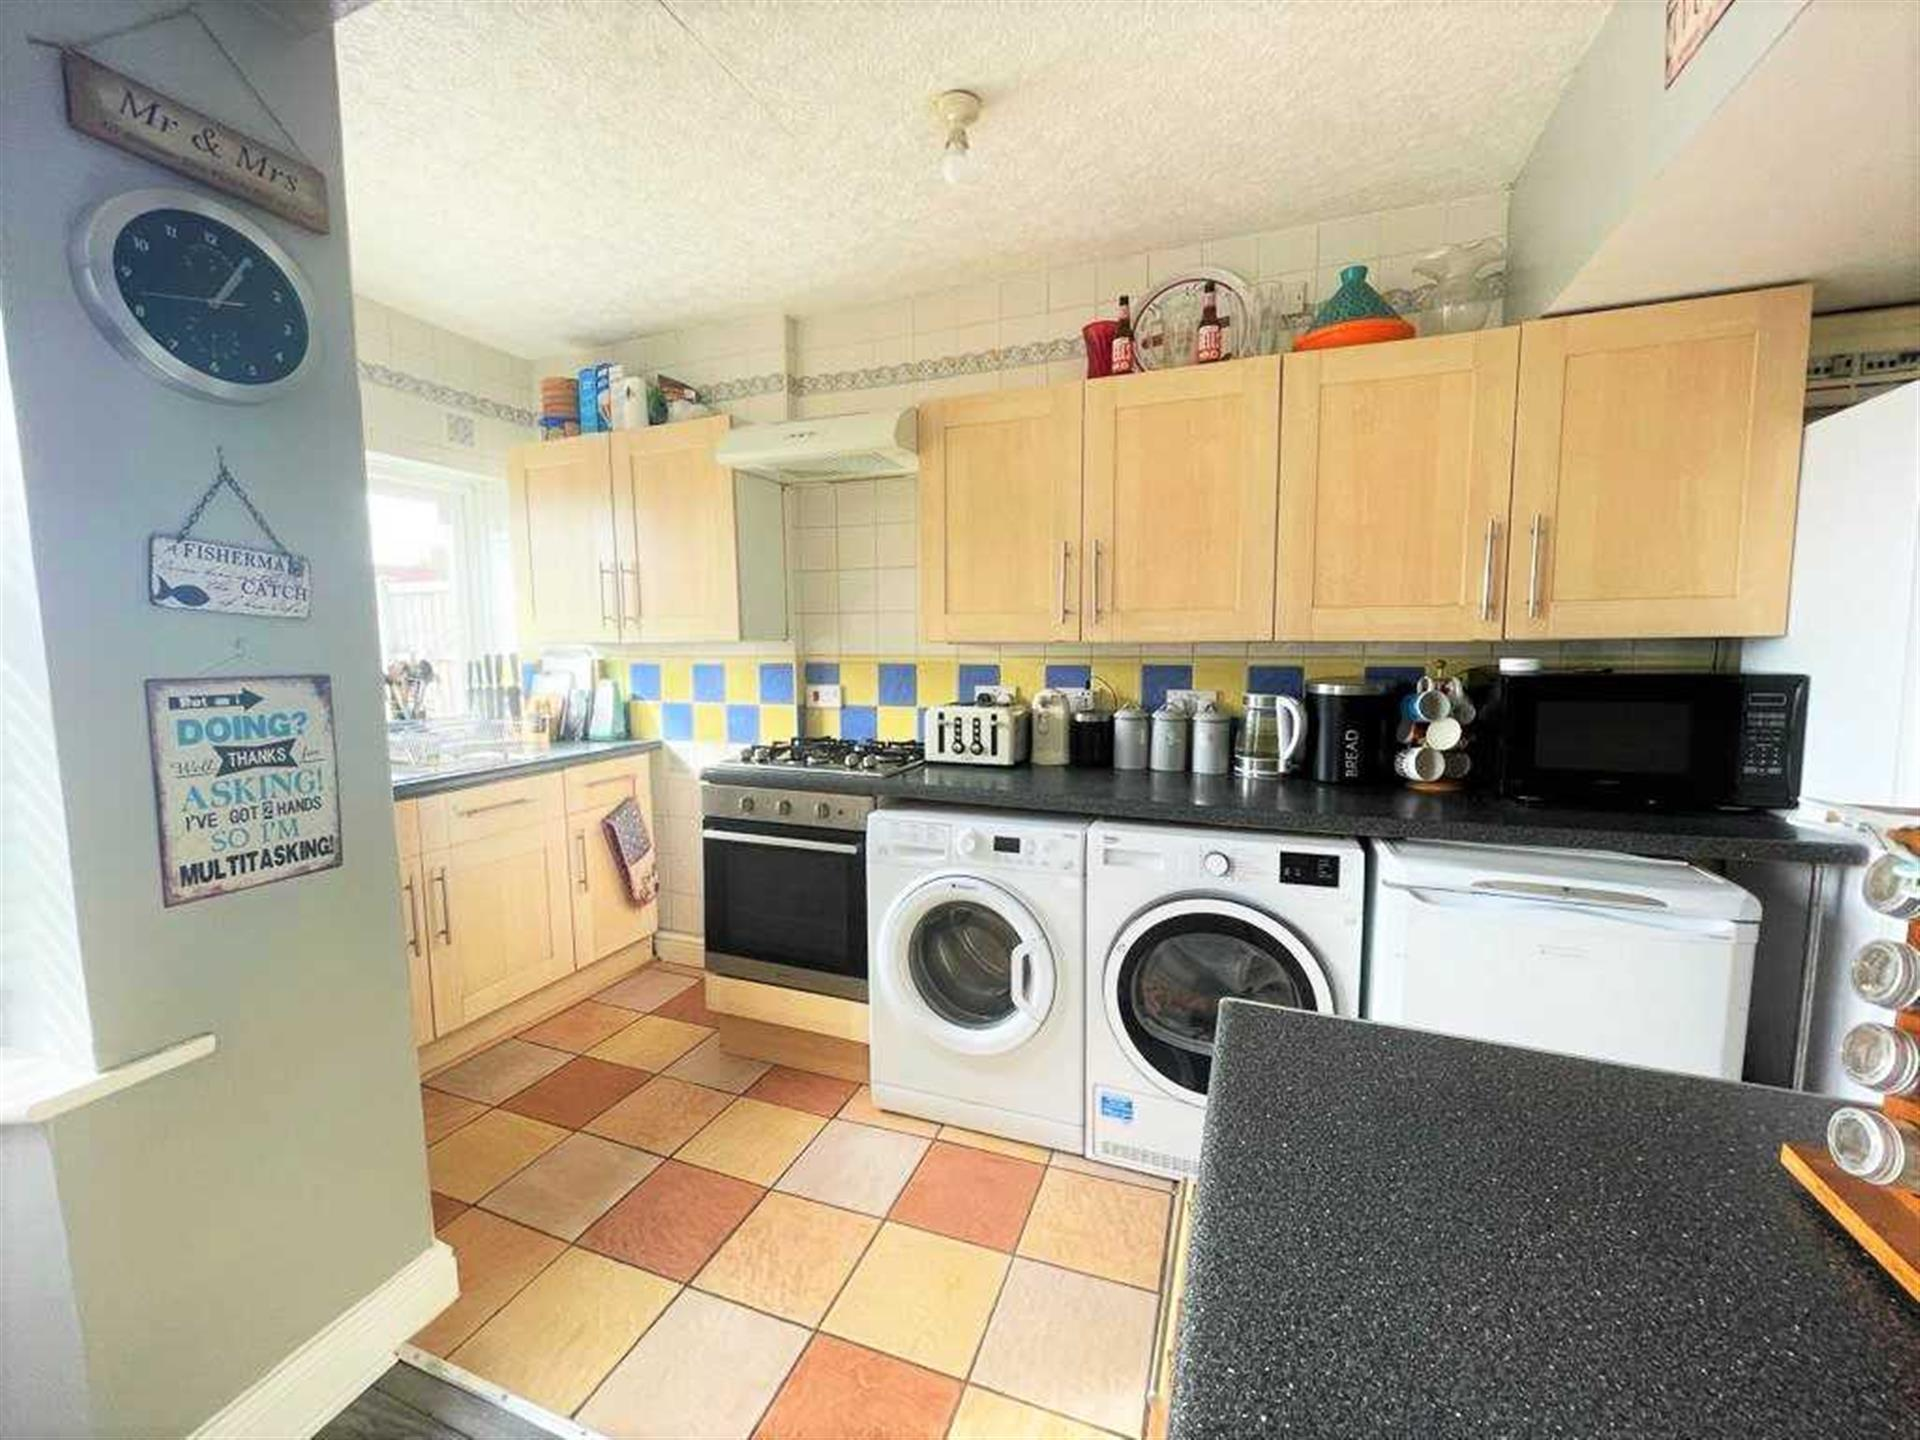 3 Bedroom Semi-detached House For Sale - Image 4